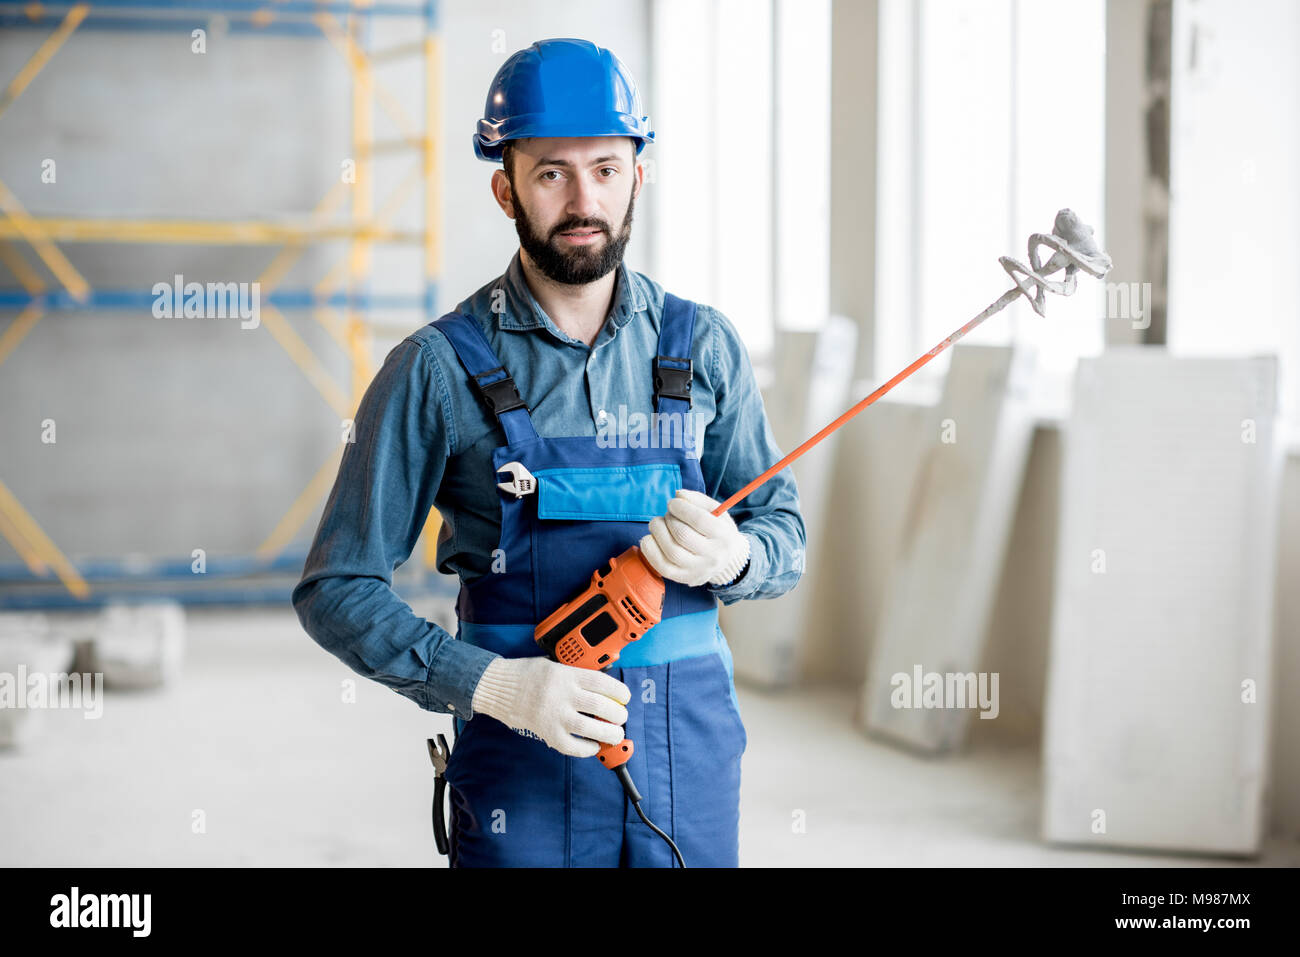 Builder with drill - Stock Image